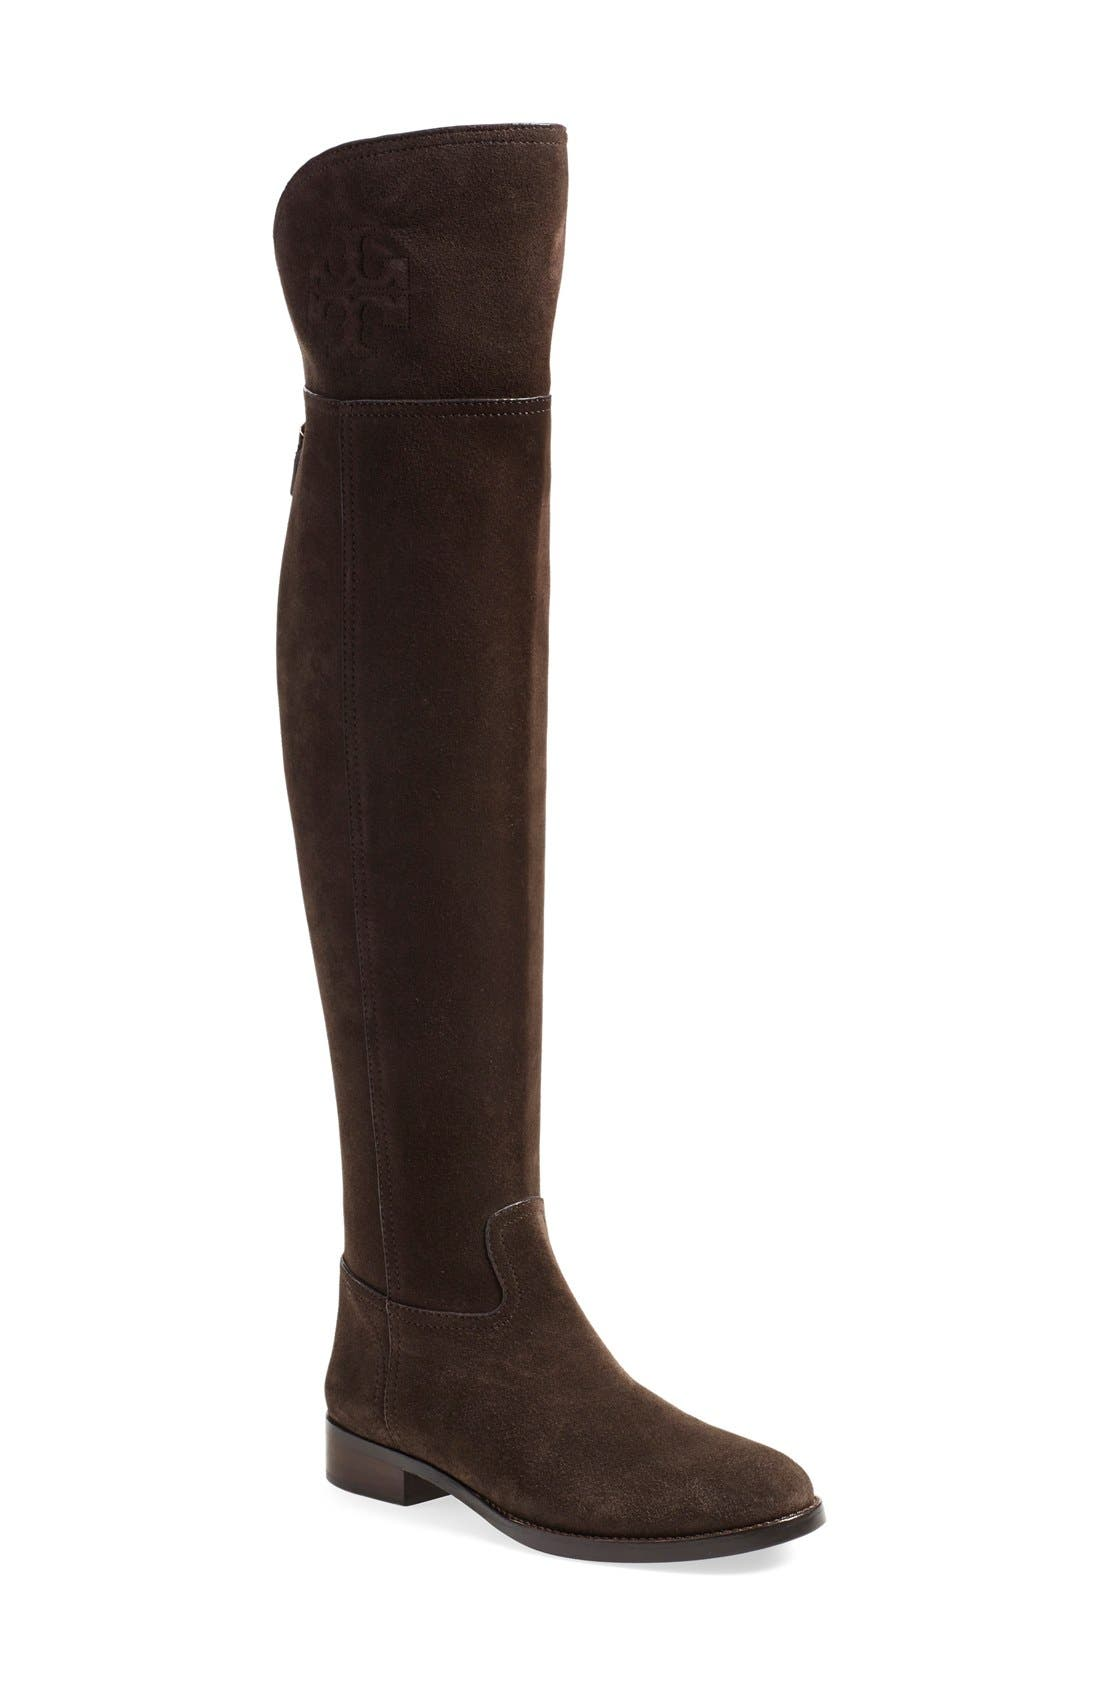 Main Image - Tory Burch 'Simone' Over the Knee Boot (Women)